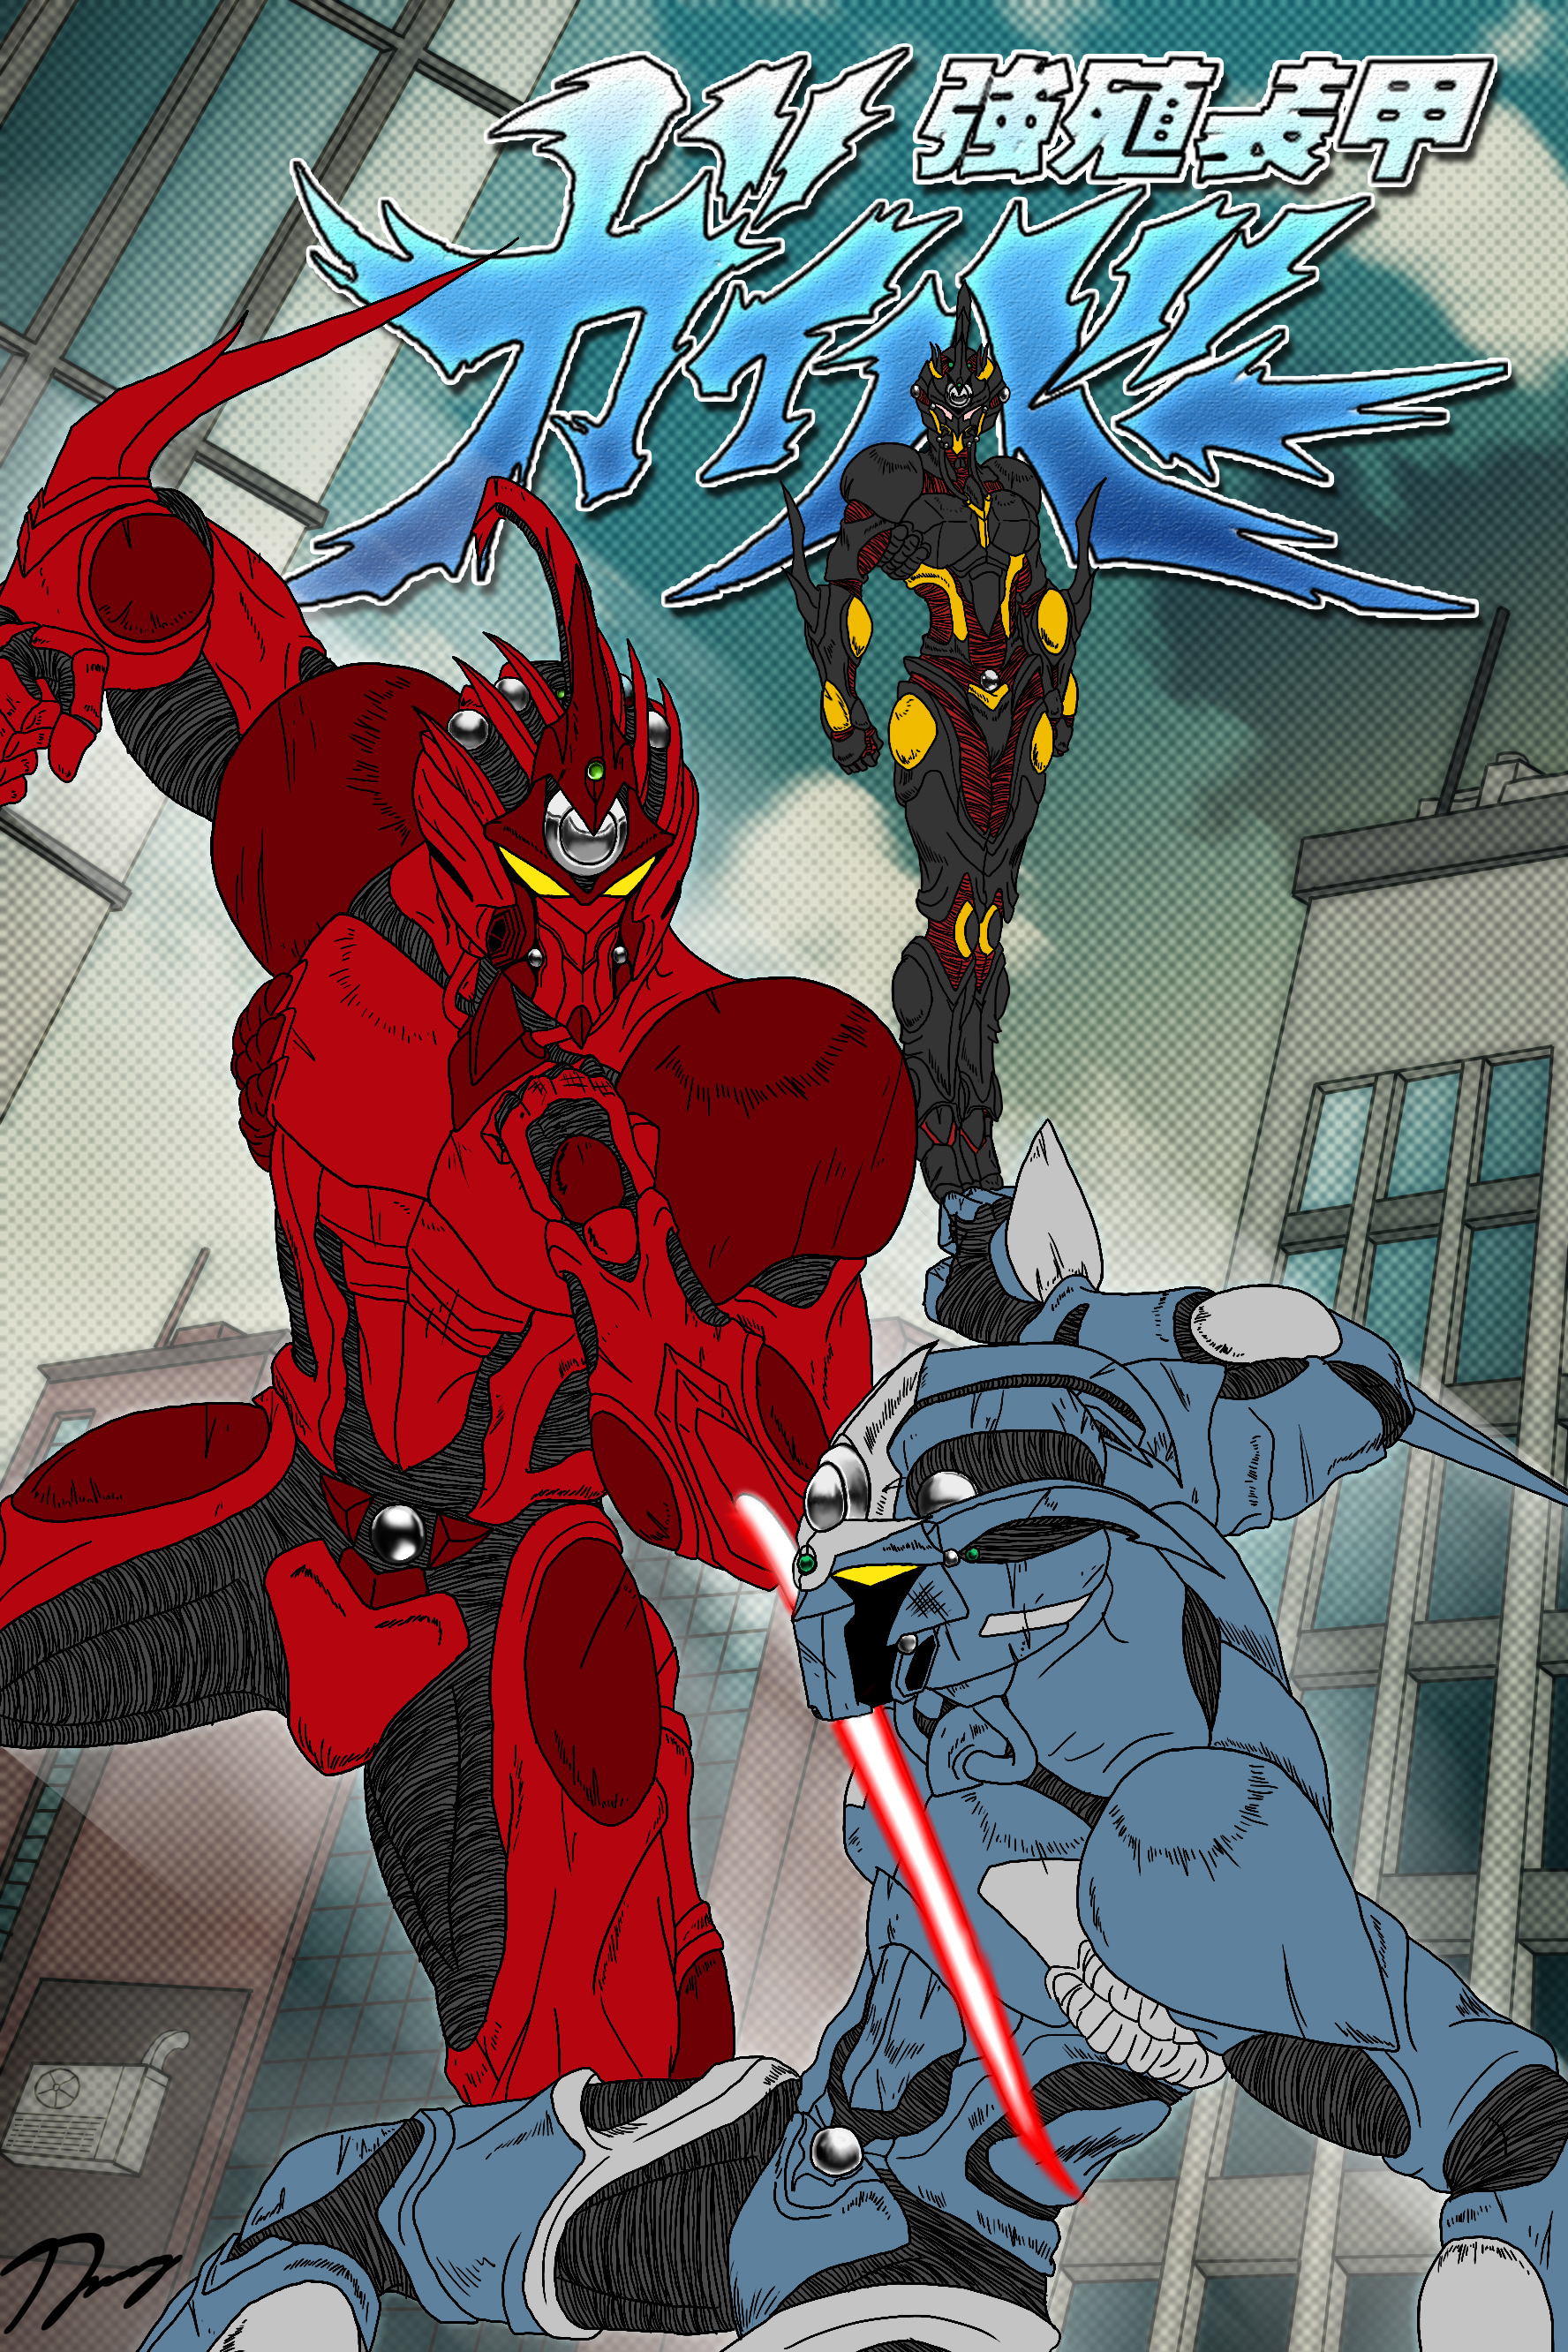 The Guyver PD: Deadly Sands